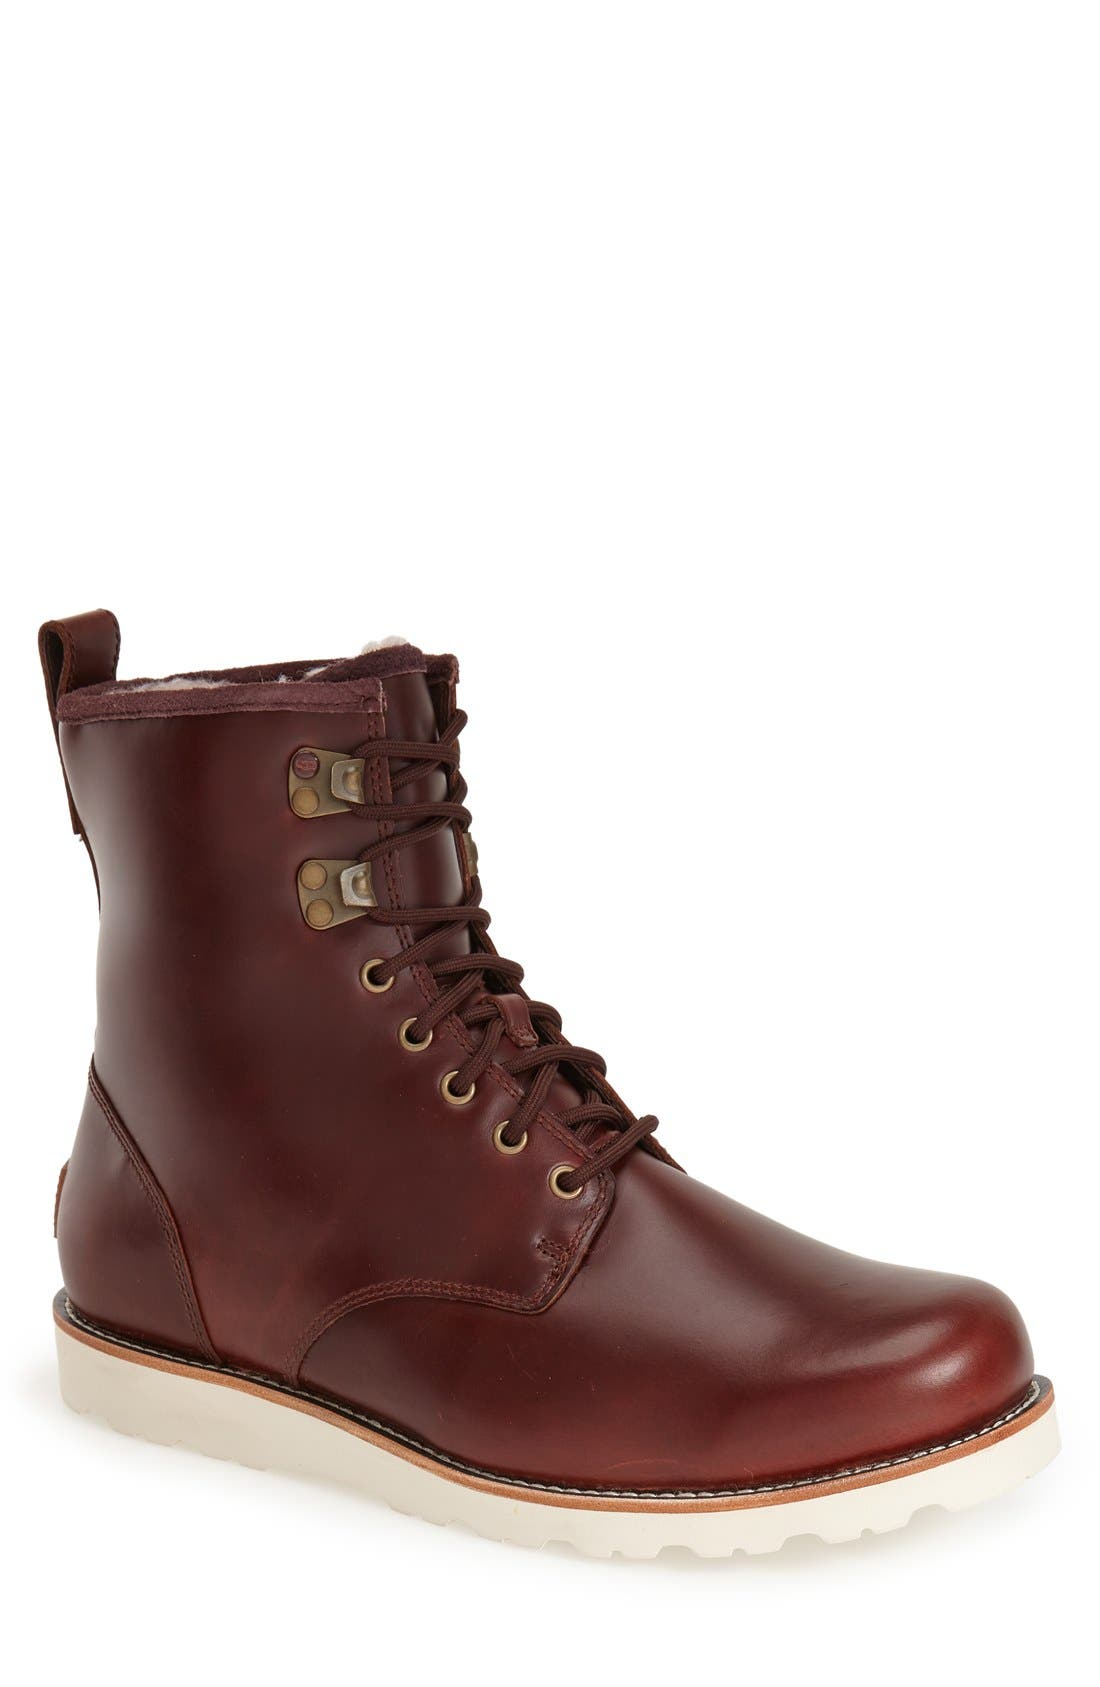 UGG<SUP>®</SUP> Hannen Waterproof Boot, Main, color, 604